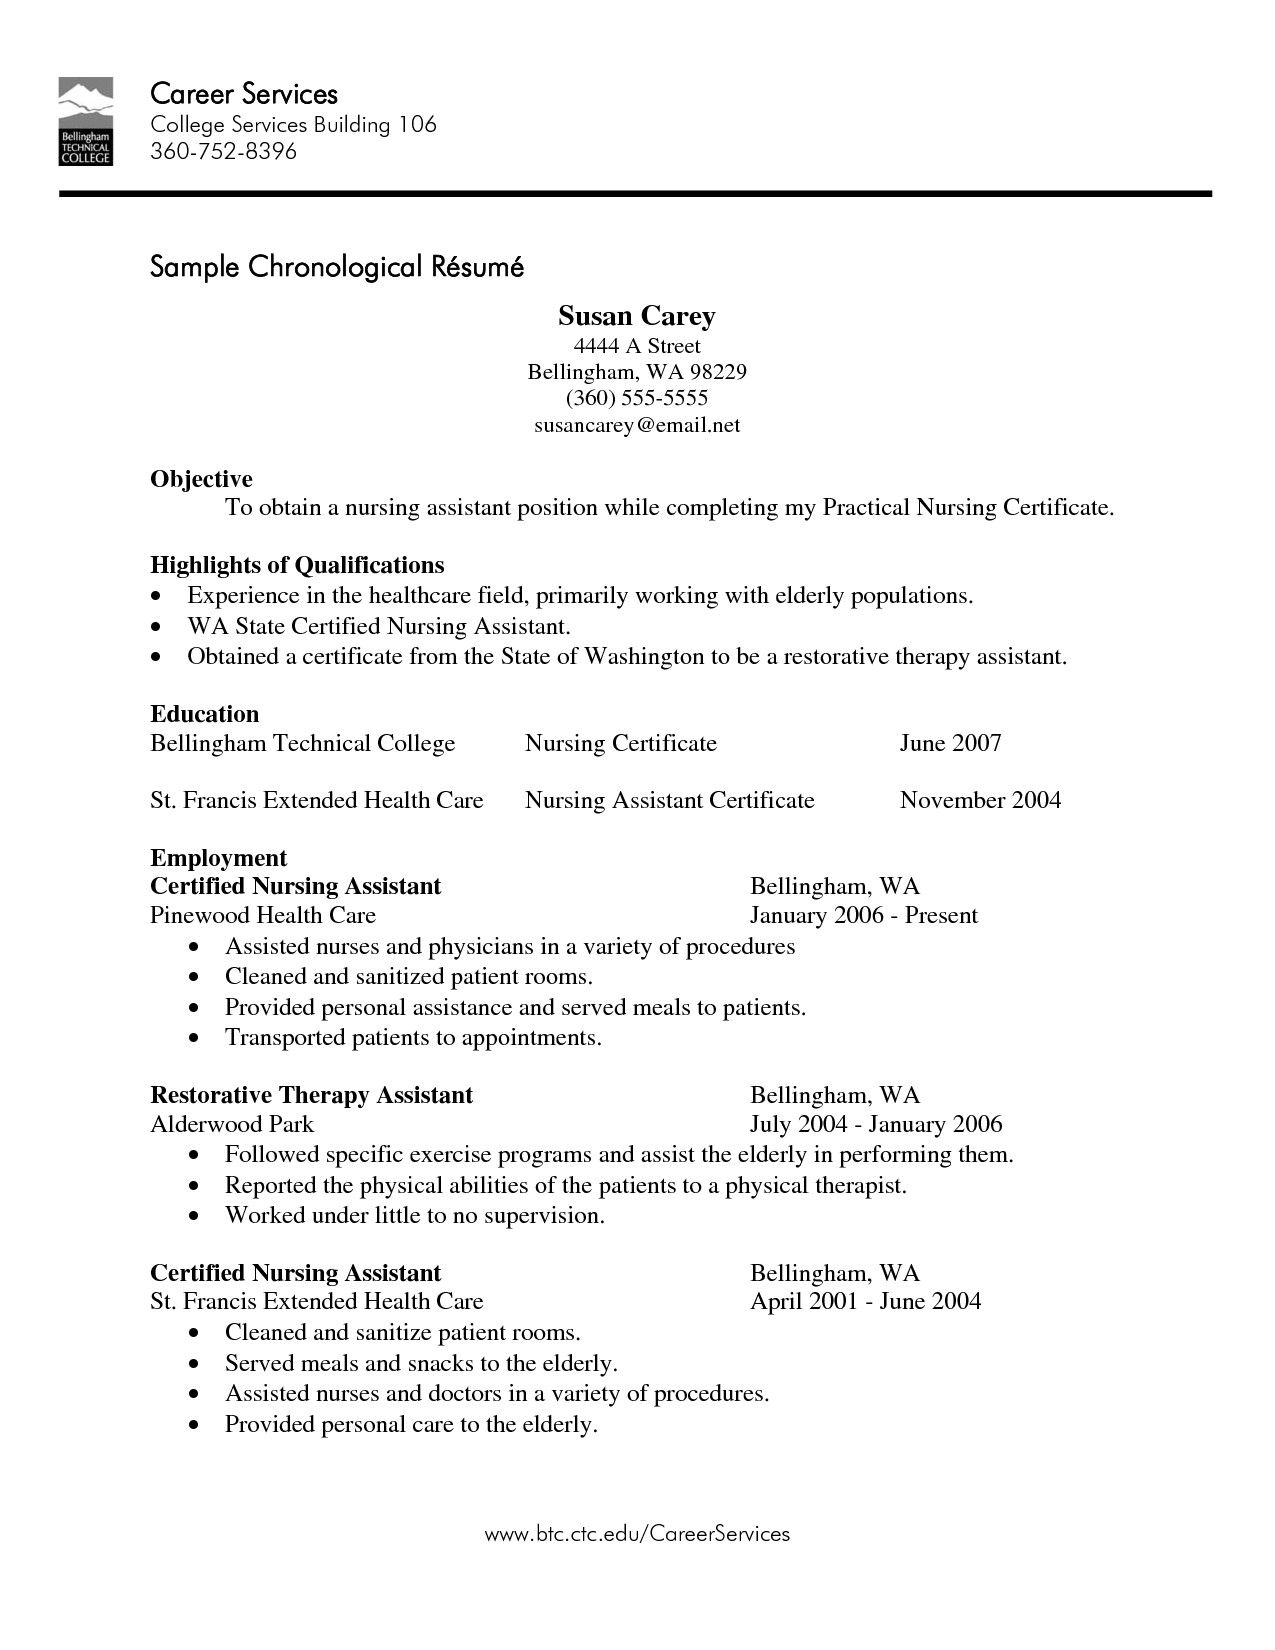 Resume Examples for Medical assistant Incredible Sample